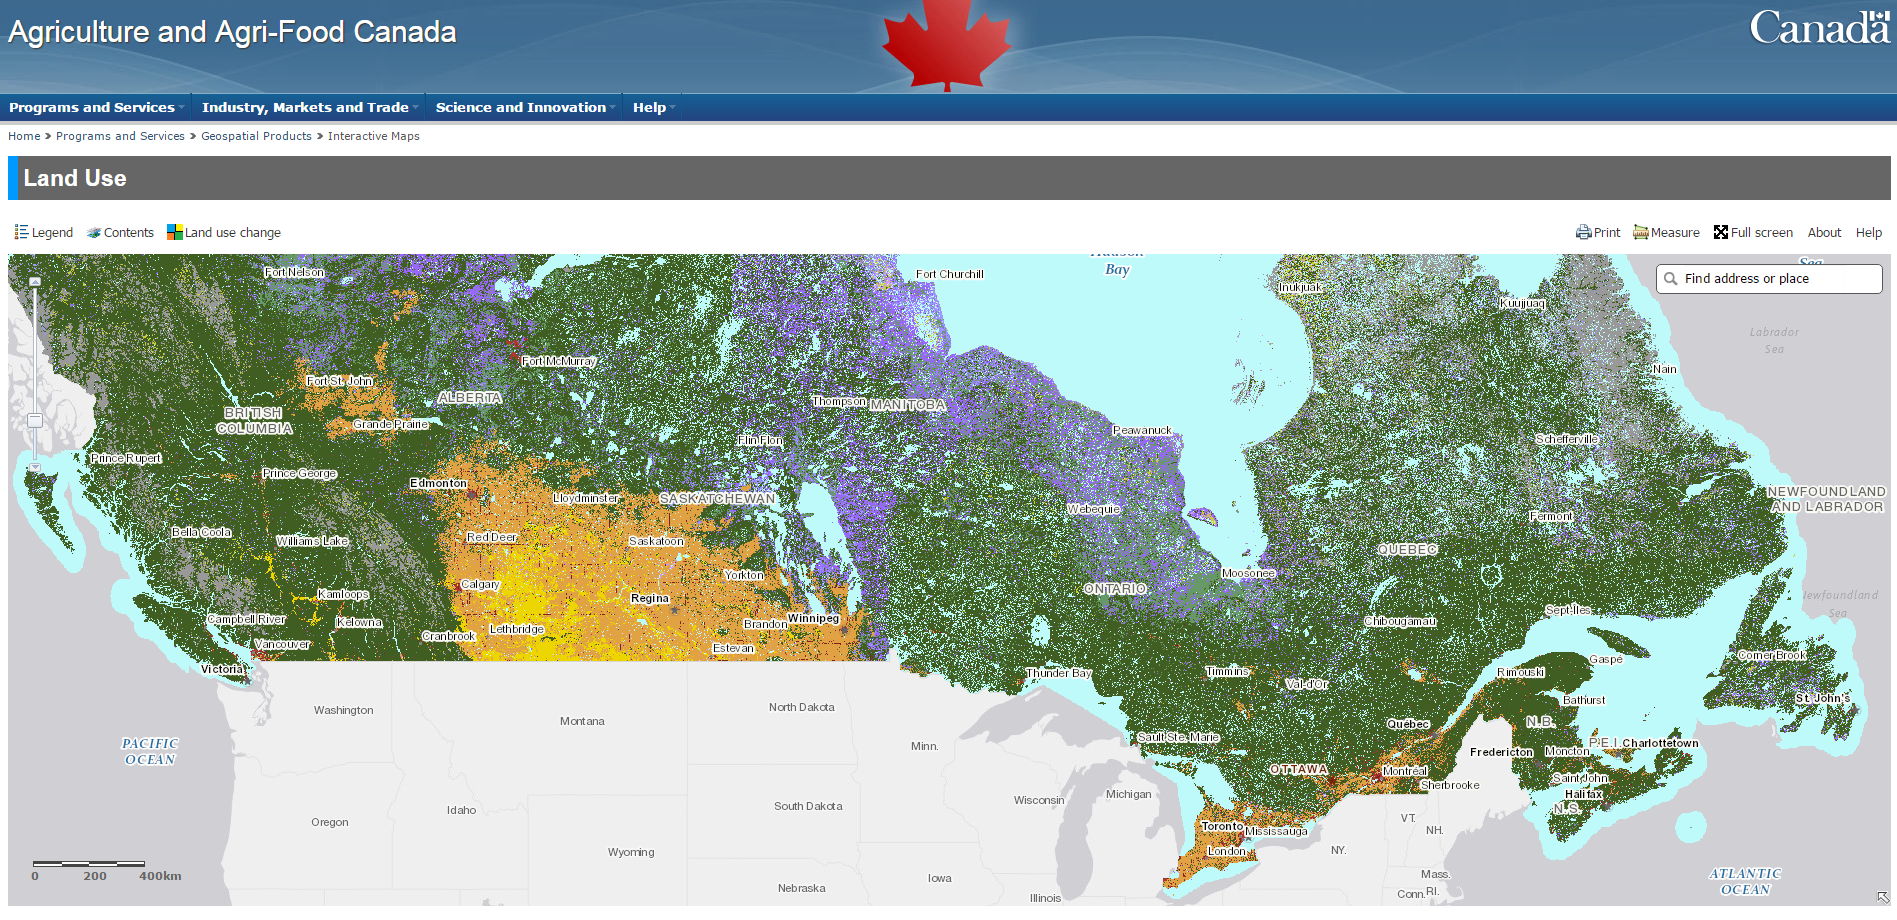 Map Of Canada Government Of Canada.Land Use 1990 2000 2010 Open Government